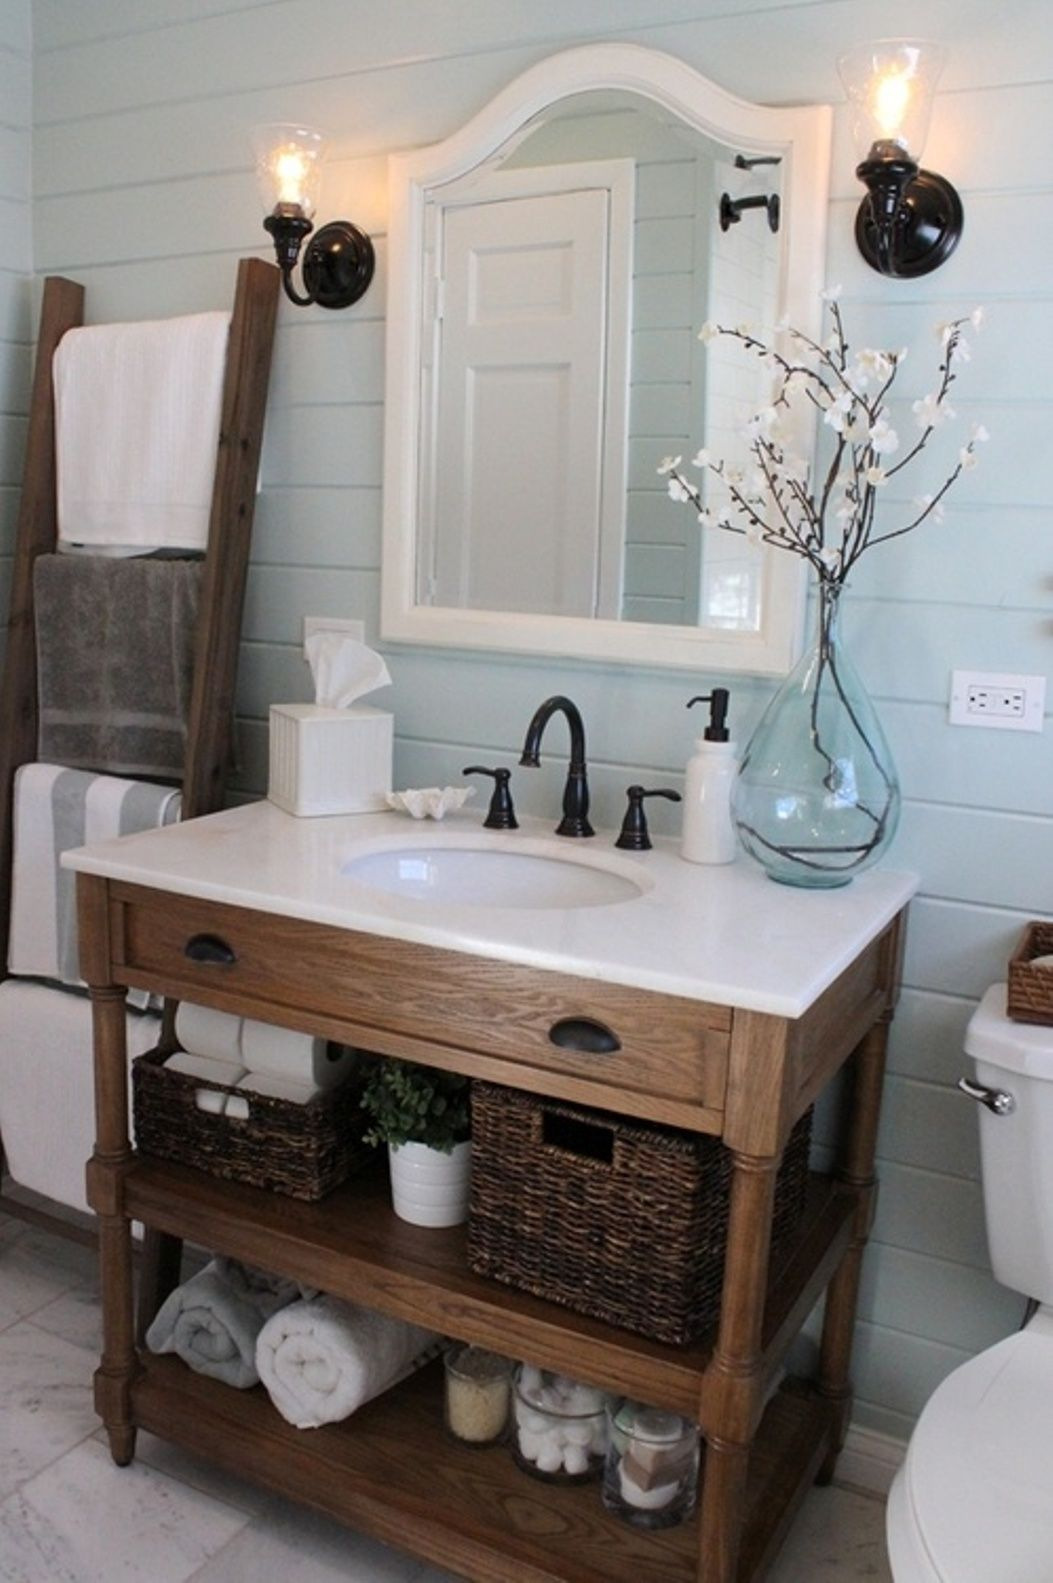 Bathroom Vanity Decor 17 Inspiring Rustic Bathroom Decor Ideas For Cozy Home